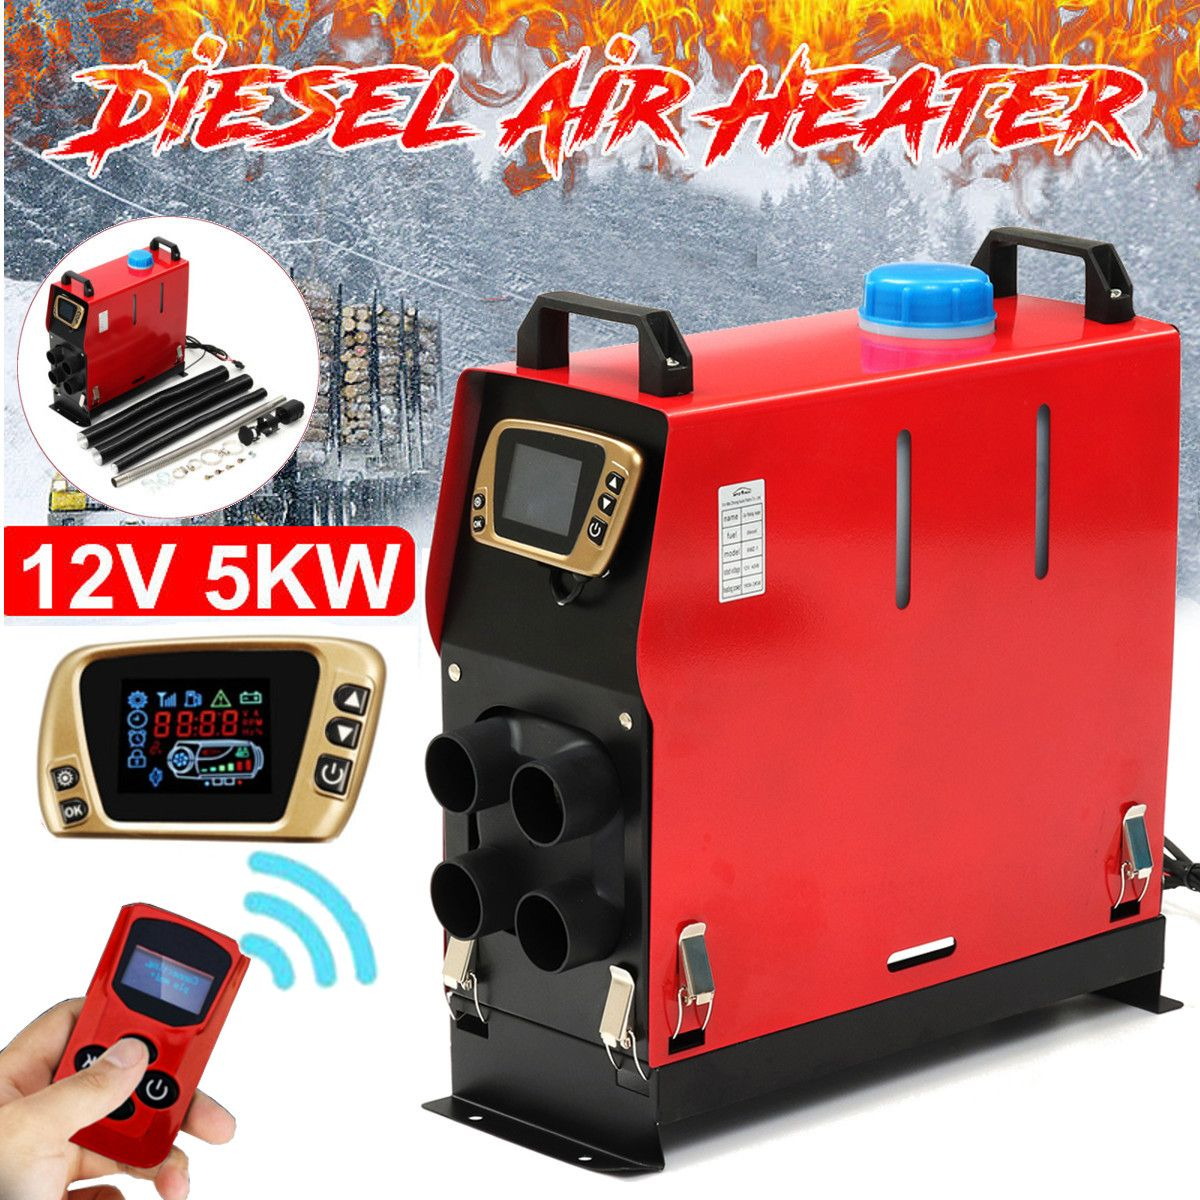 All In One 5000W Air diesels Heater 5KW 12V Car Heater For Trucks Motor-Homes Boats Bus +Newest LCD key Switch + Remote control